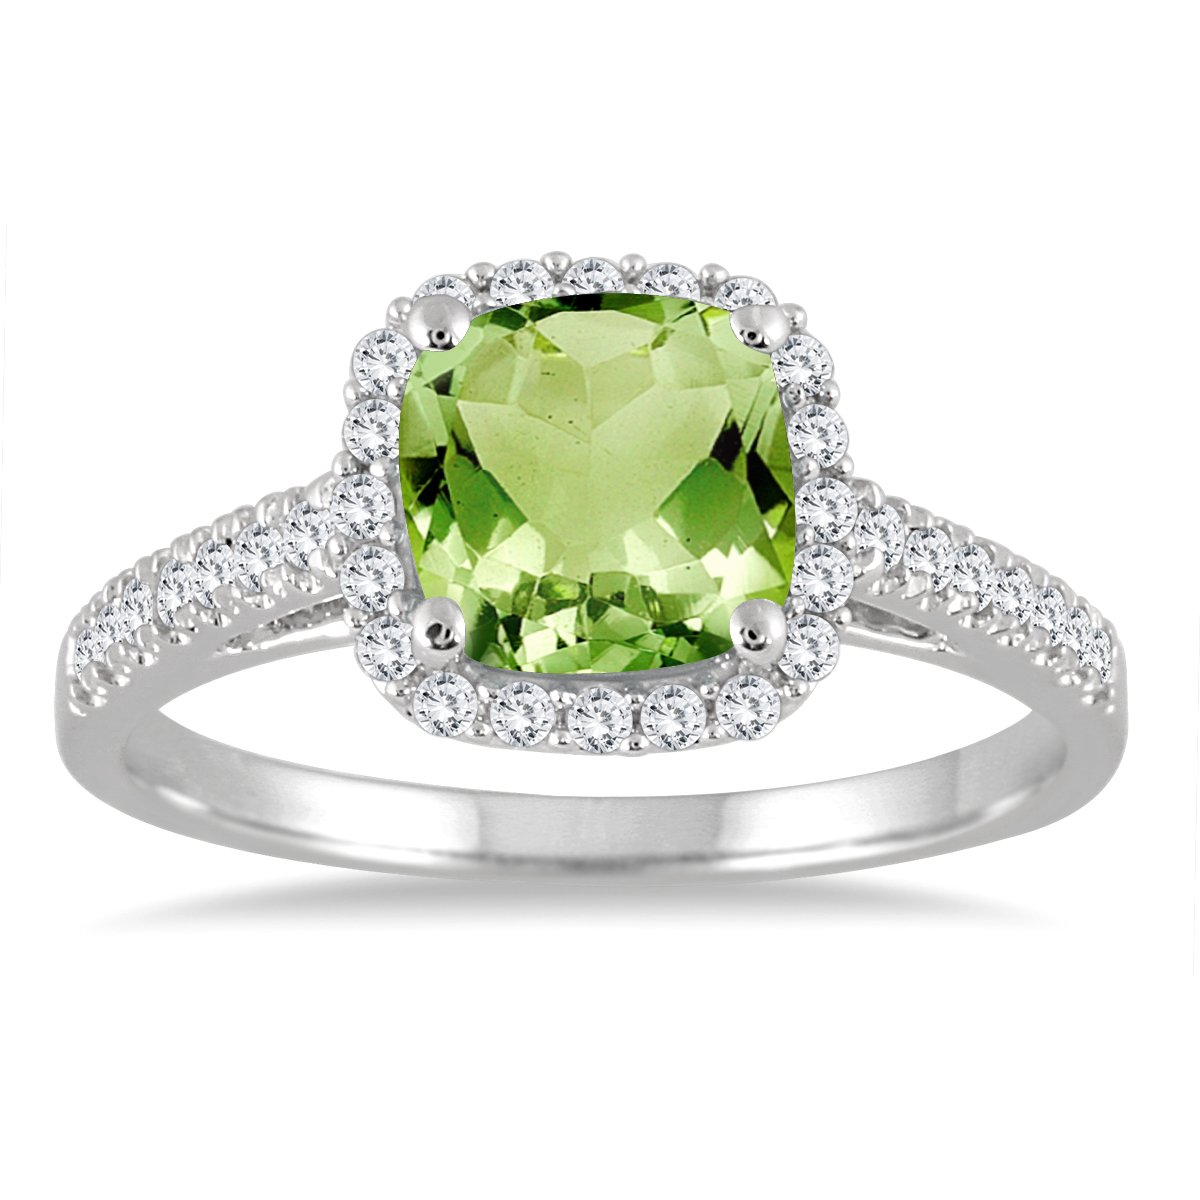 Peridot and Diamond Ring in 10K White Gold by Szul